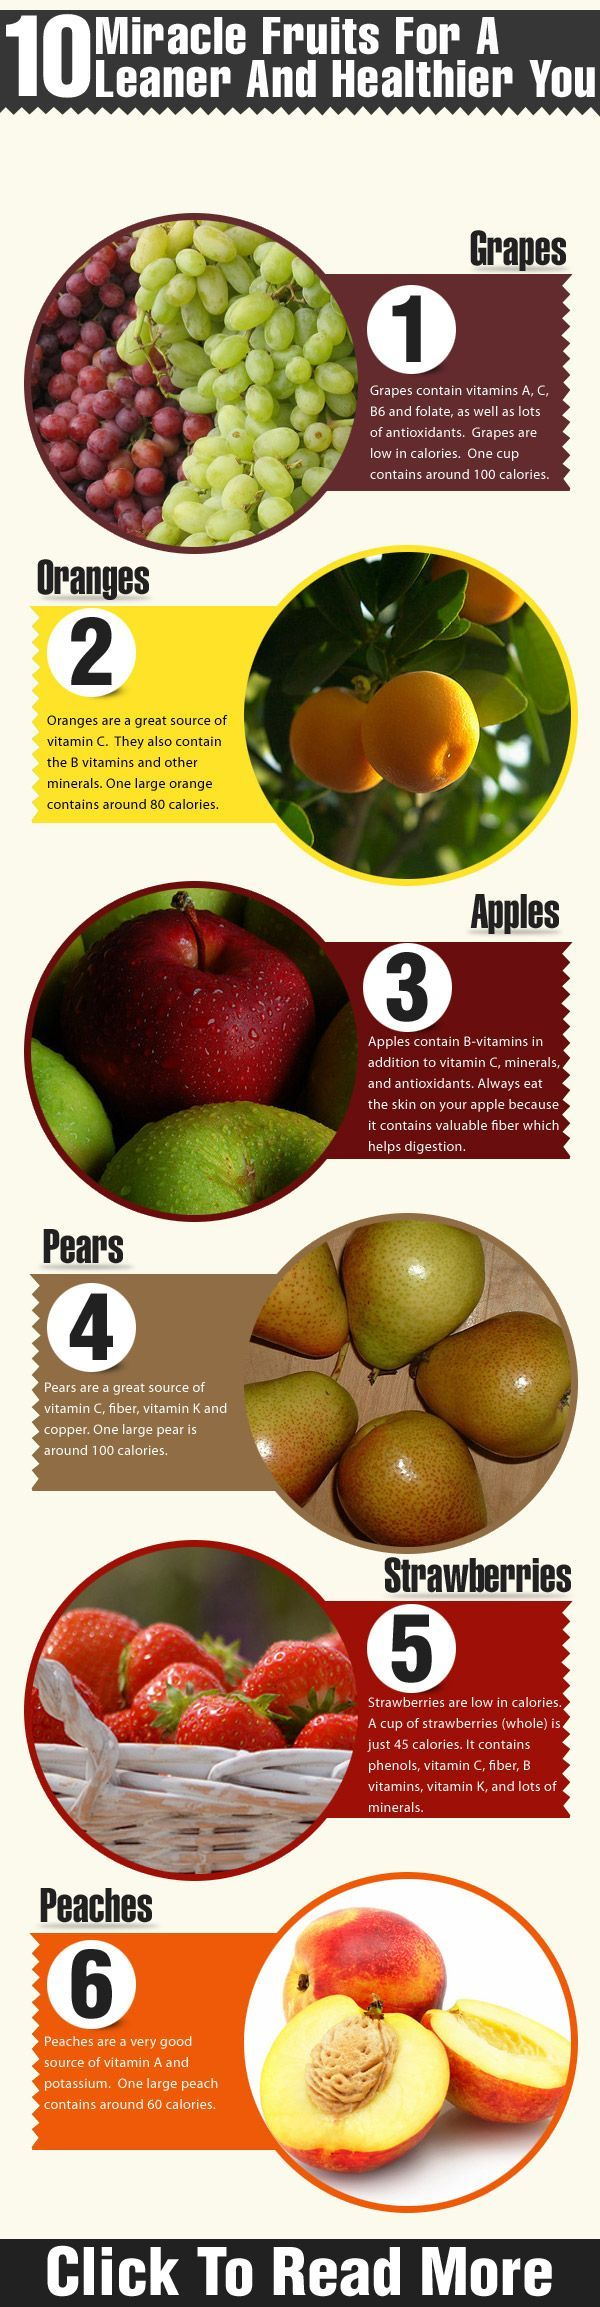 Ten Miracle Fruits For A Leaner And Healthier You